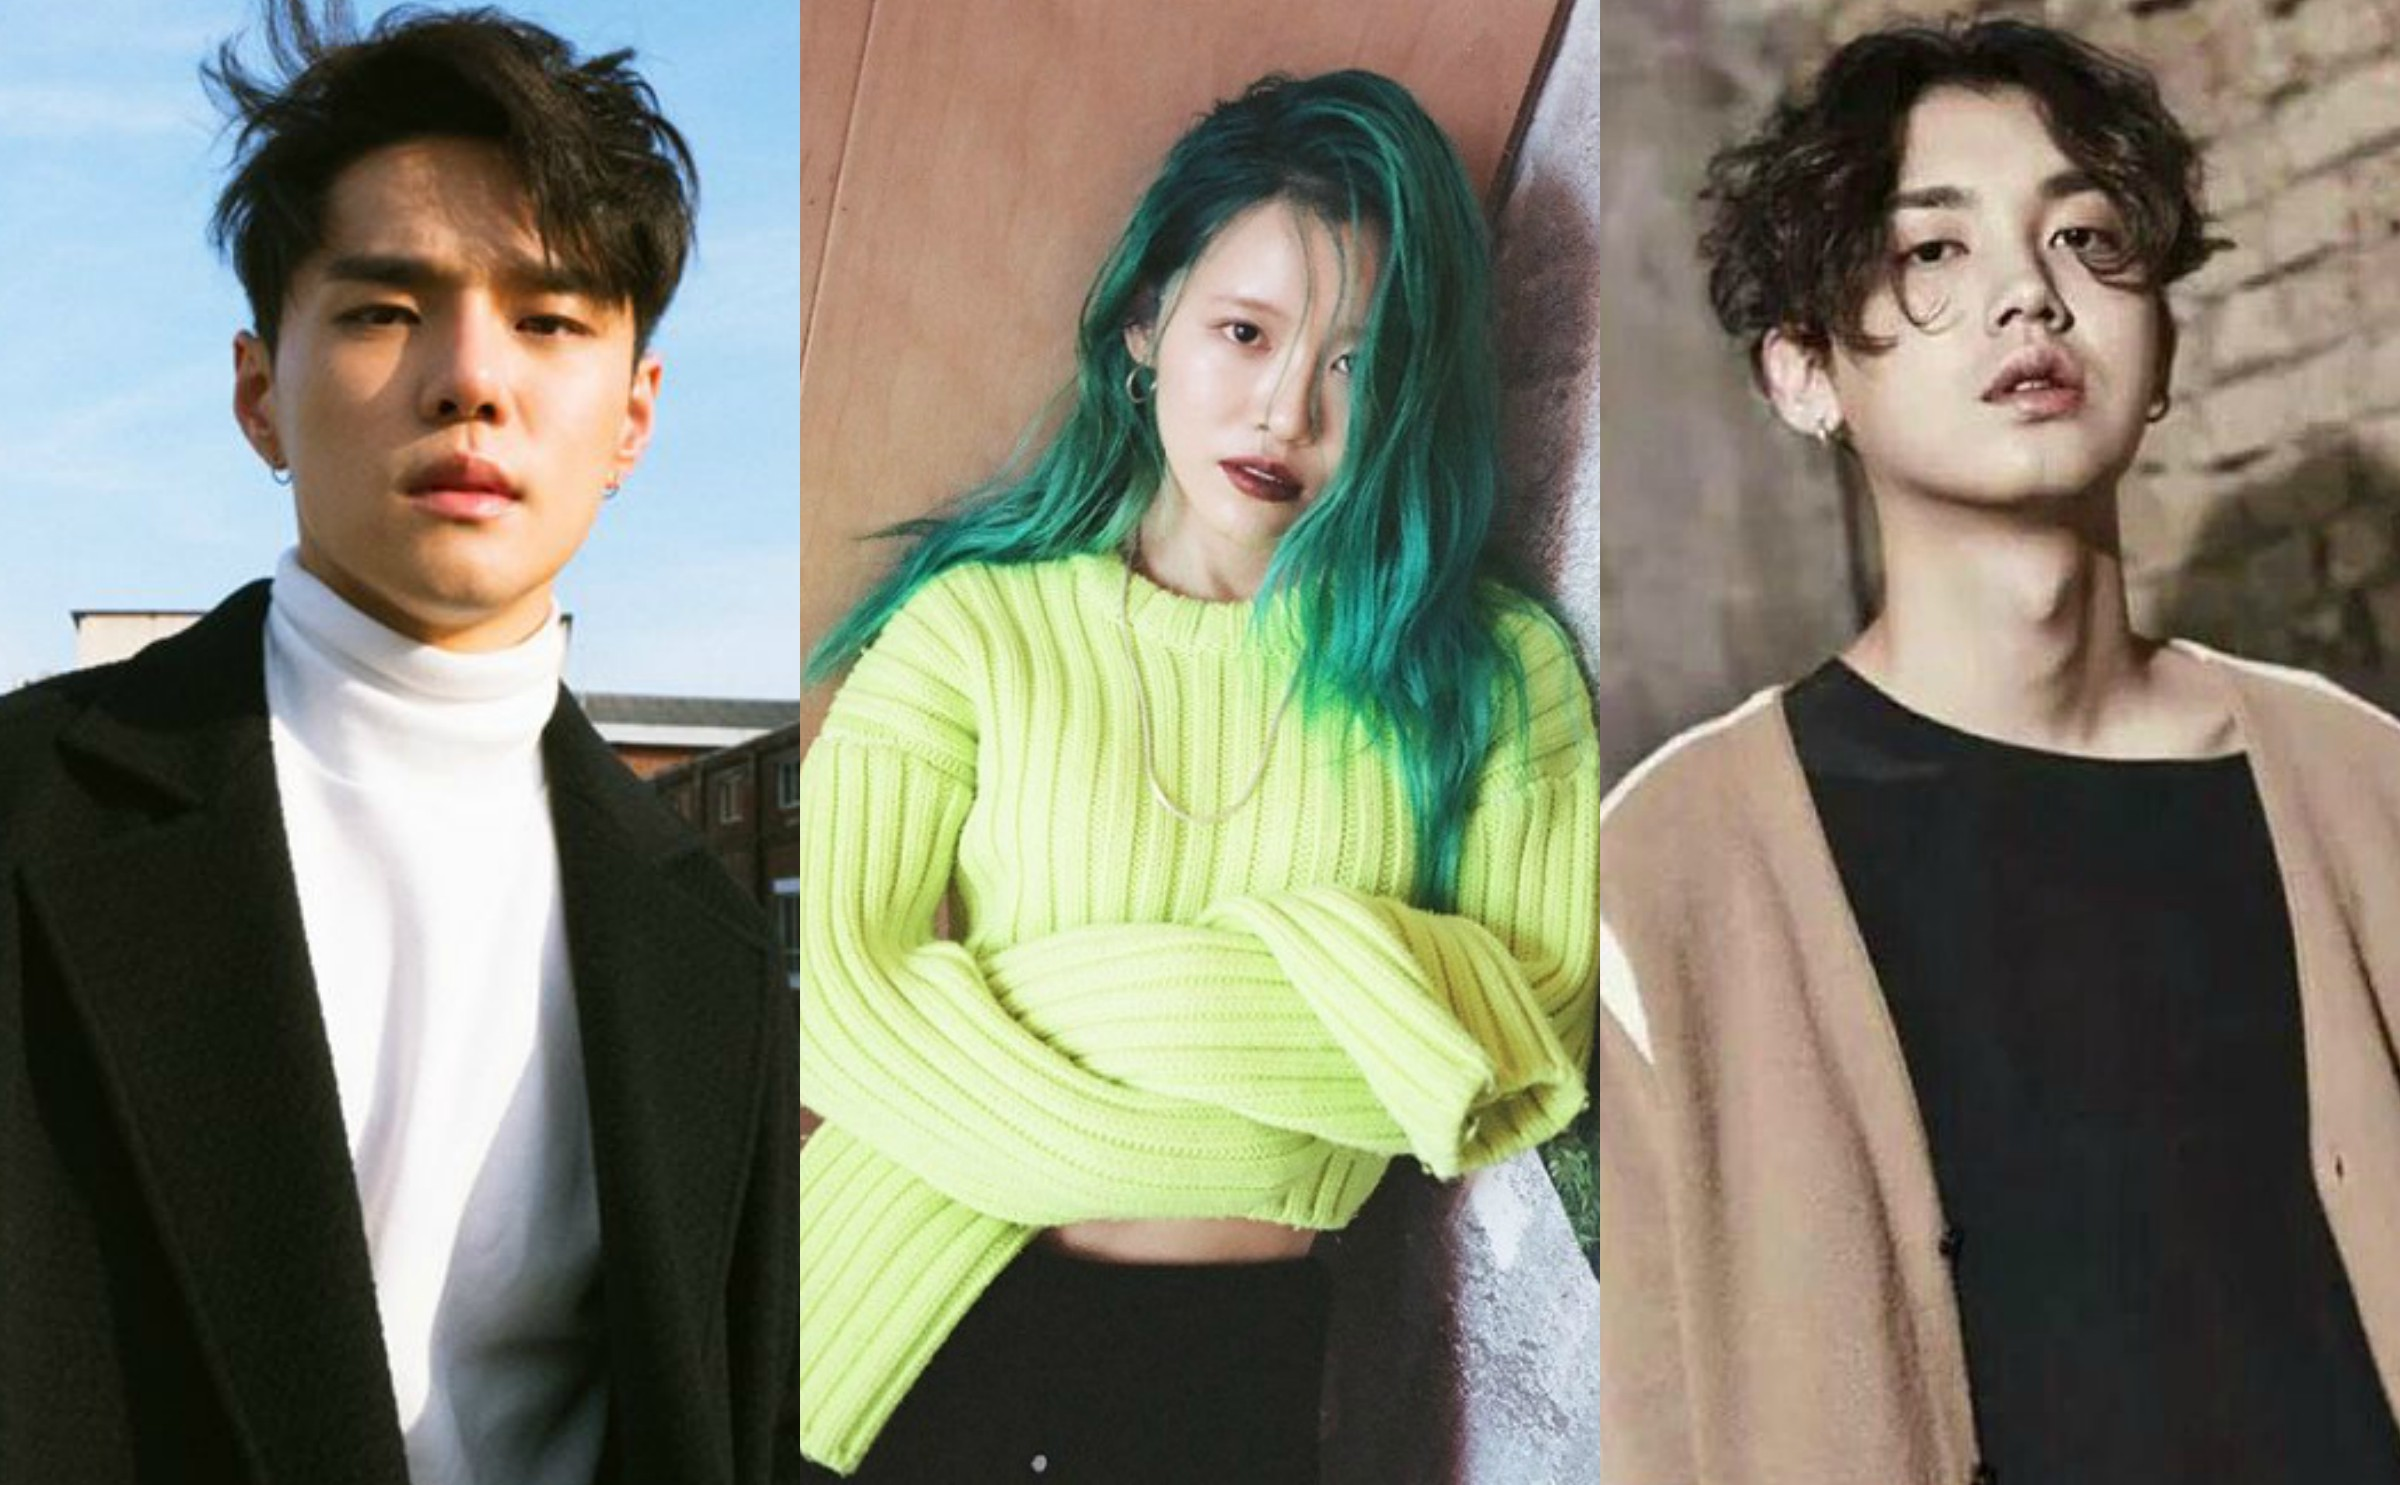 11 Underrated Korean R&B Artists That'll Have You Eargasming All Day